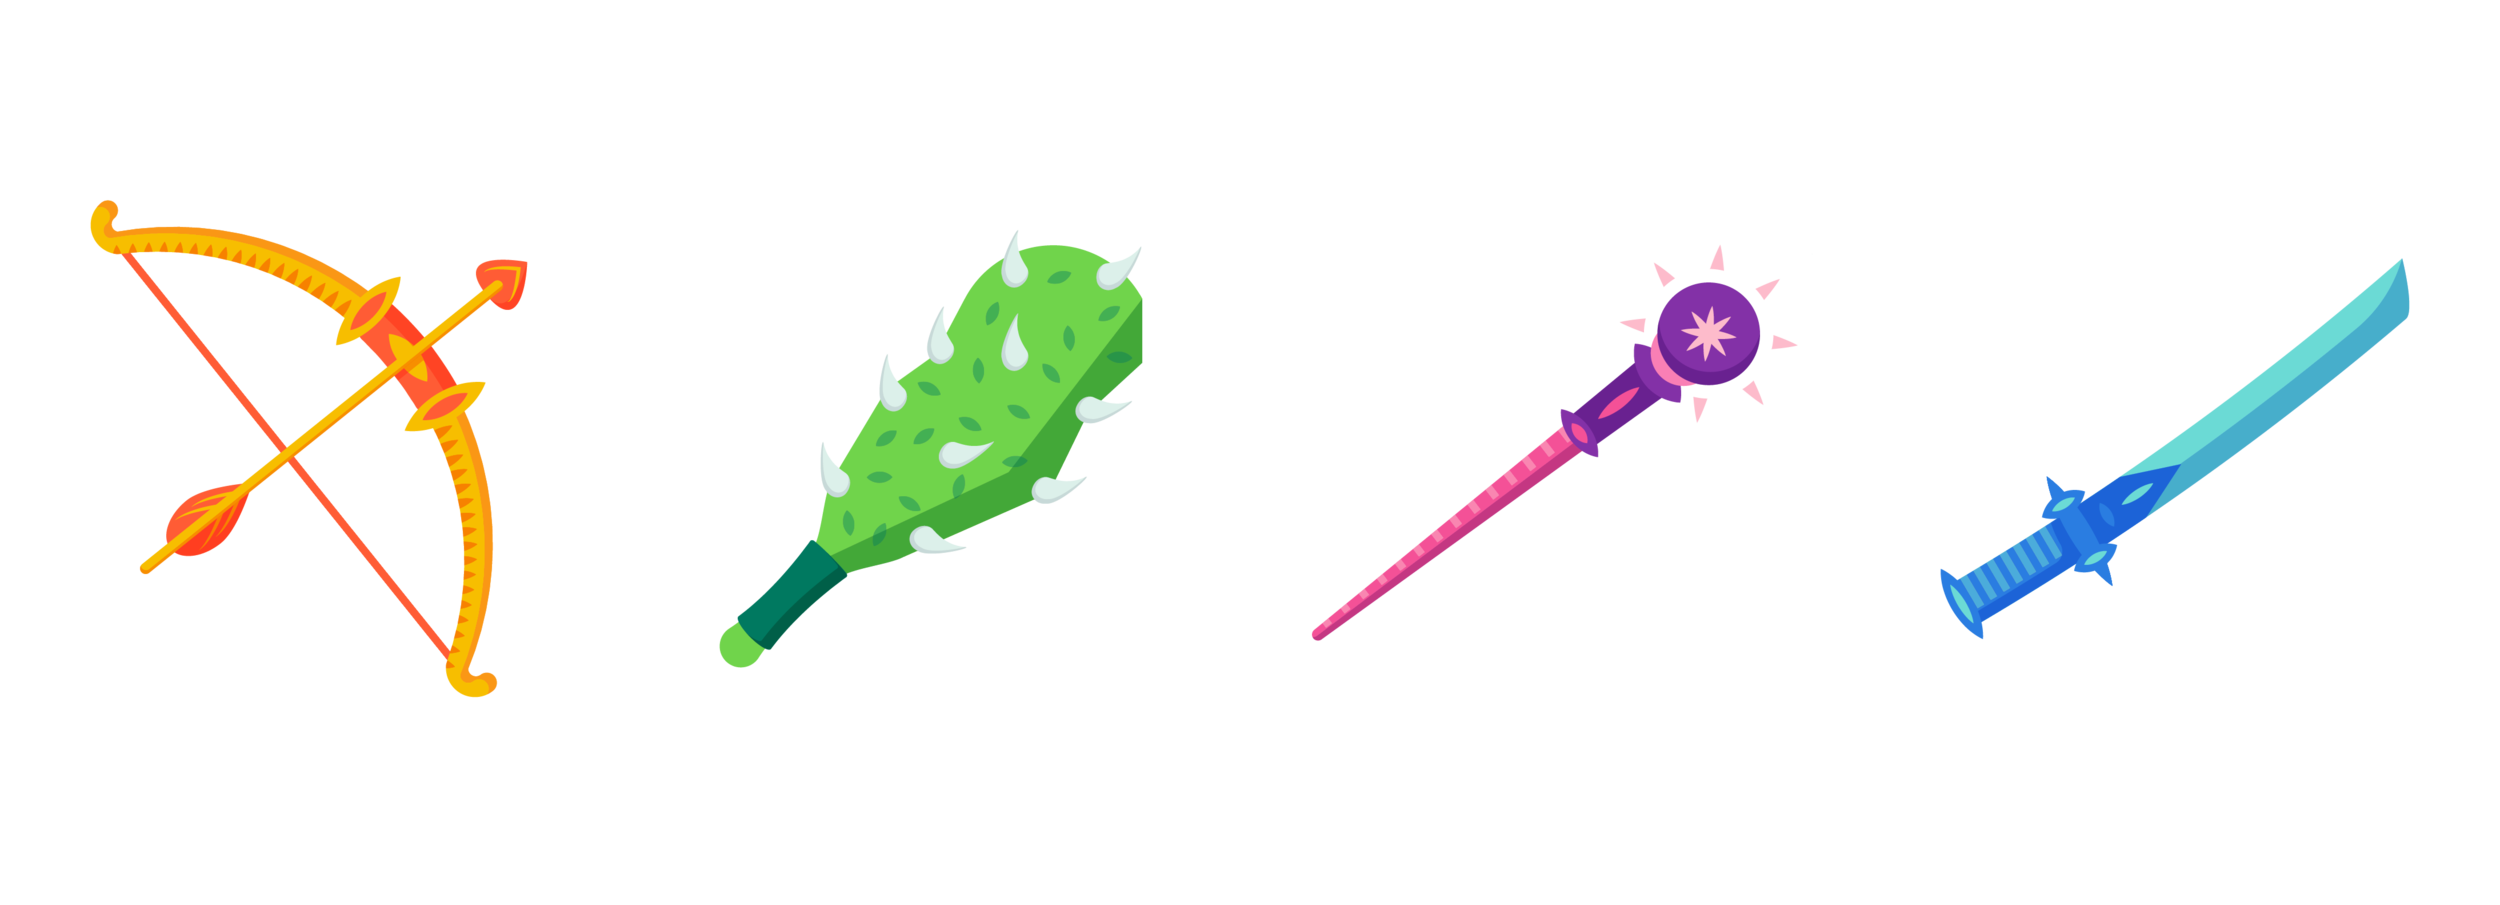 Power up - Power up with special weapons and abilities.